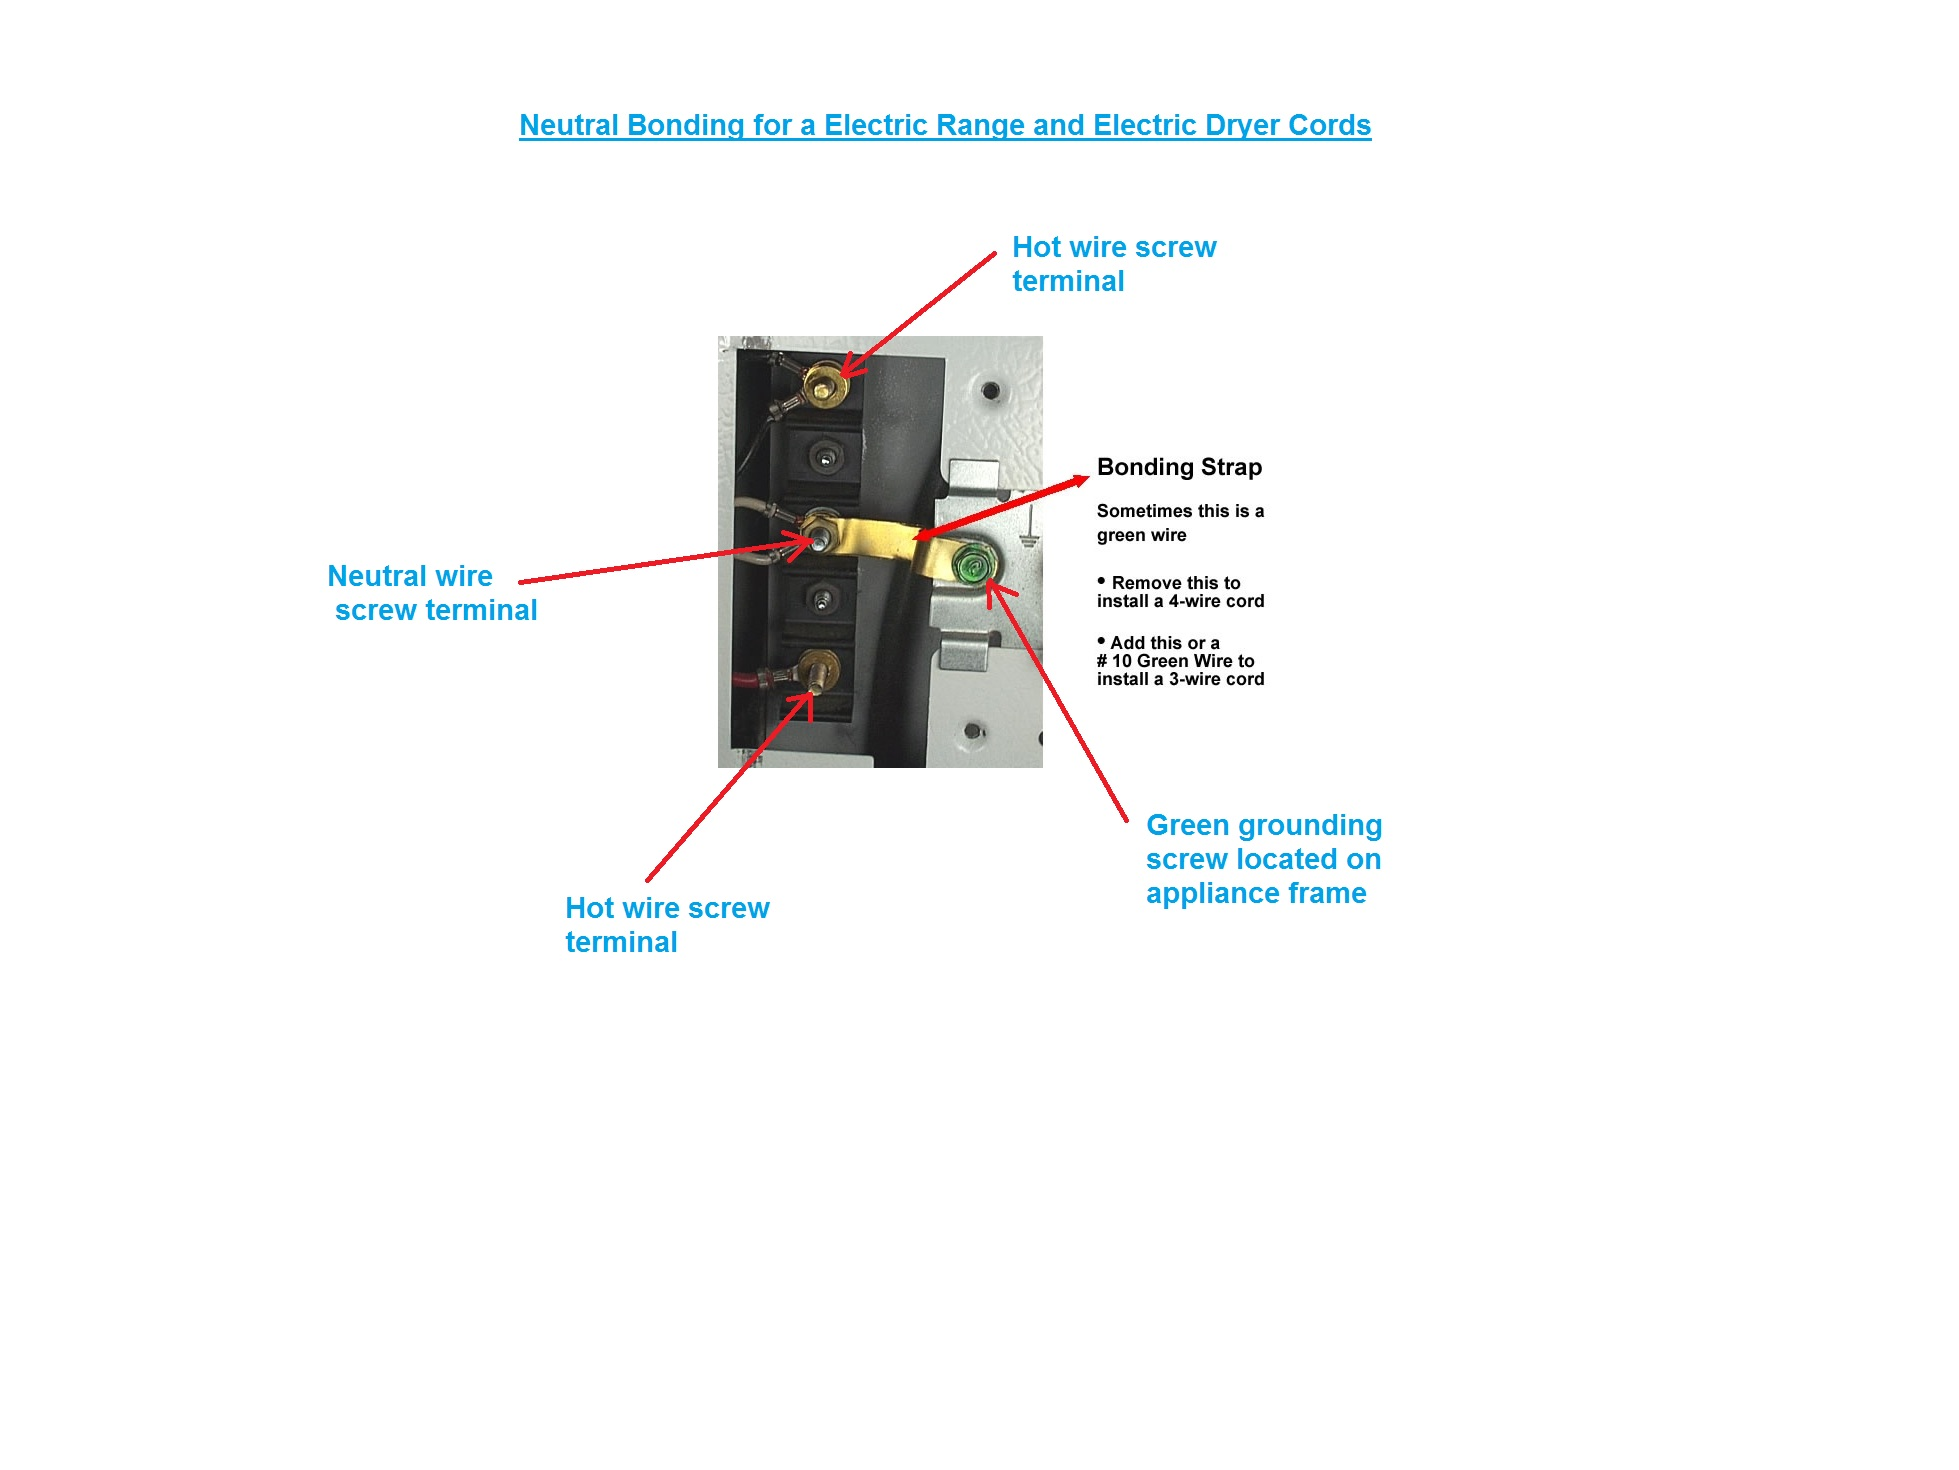 I Have An Issue With The Electrical Wire Im Trying To Replace A Diagram 3 Grounded Cord B5028568 1a1f 4f6b B014 1494906d259b Neutral Bonding